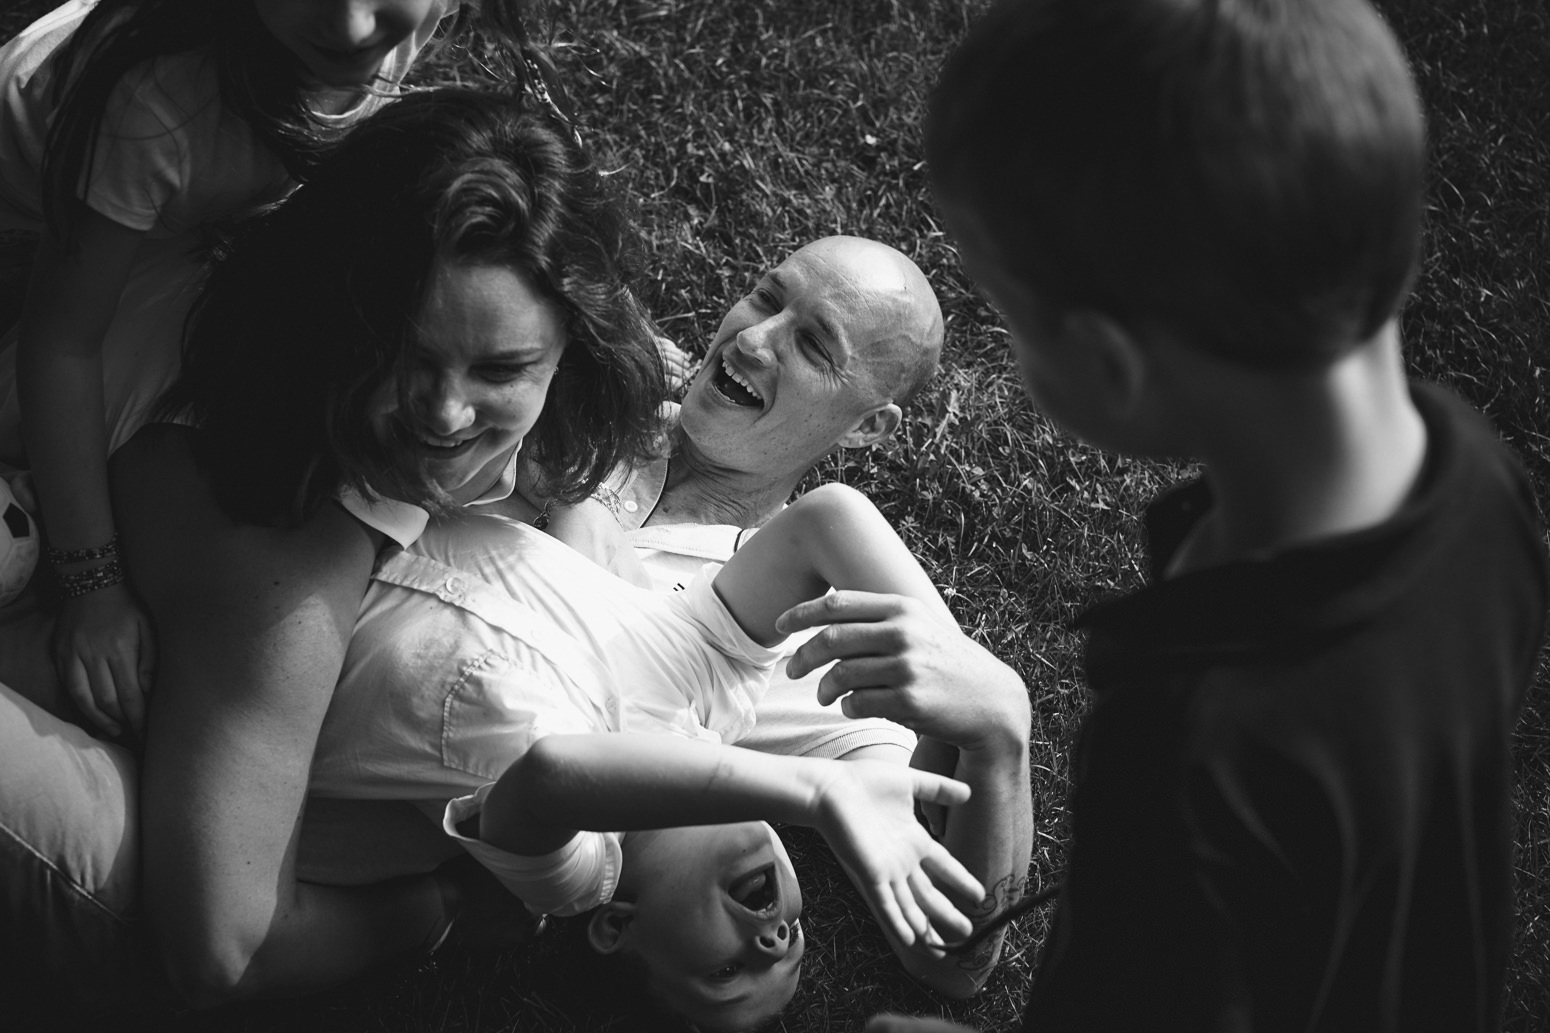 Black and white photo of family playing together on grass